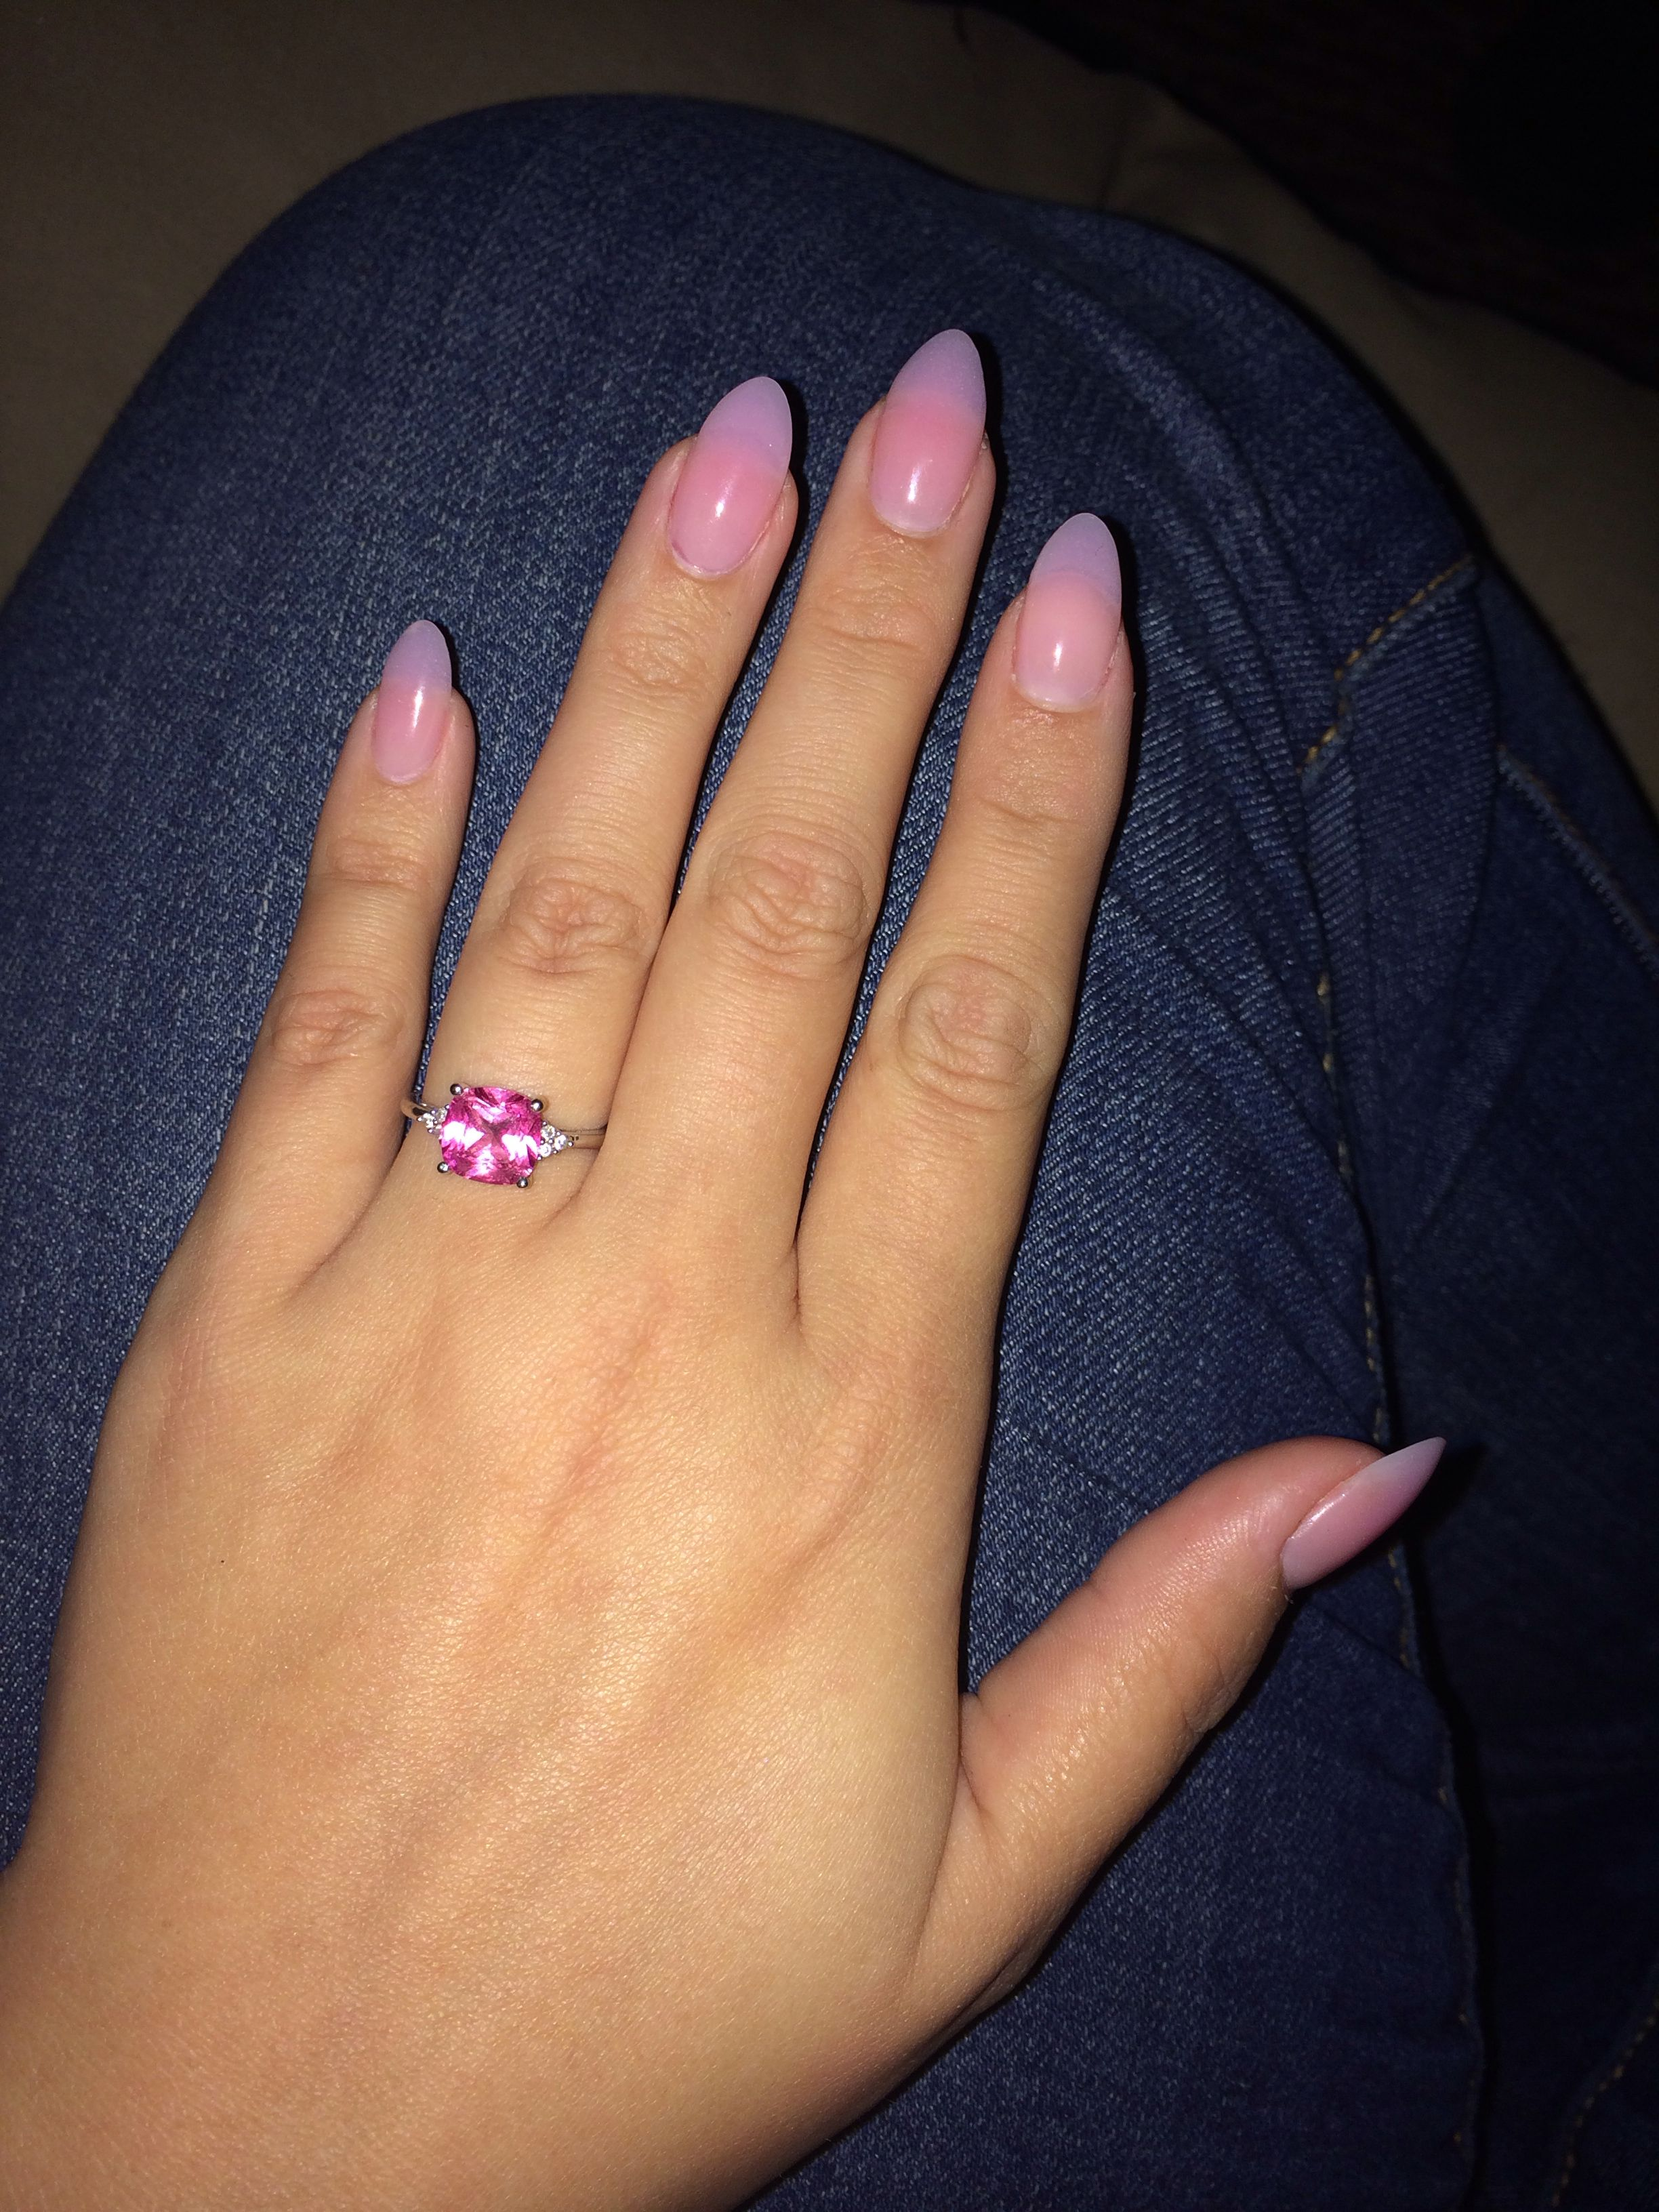 Almond Shaped Acrylic Nails In Cover Pink Uv Gel Top Coat My New Favorite Look Acrylic Nails Coffin Nails Almond Nails